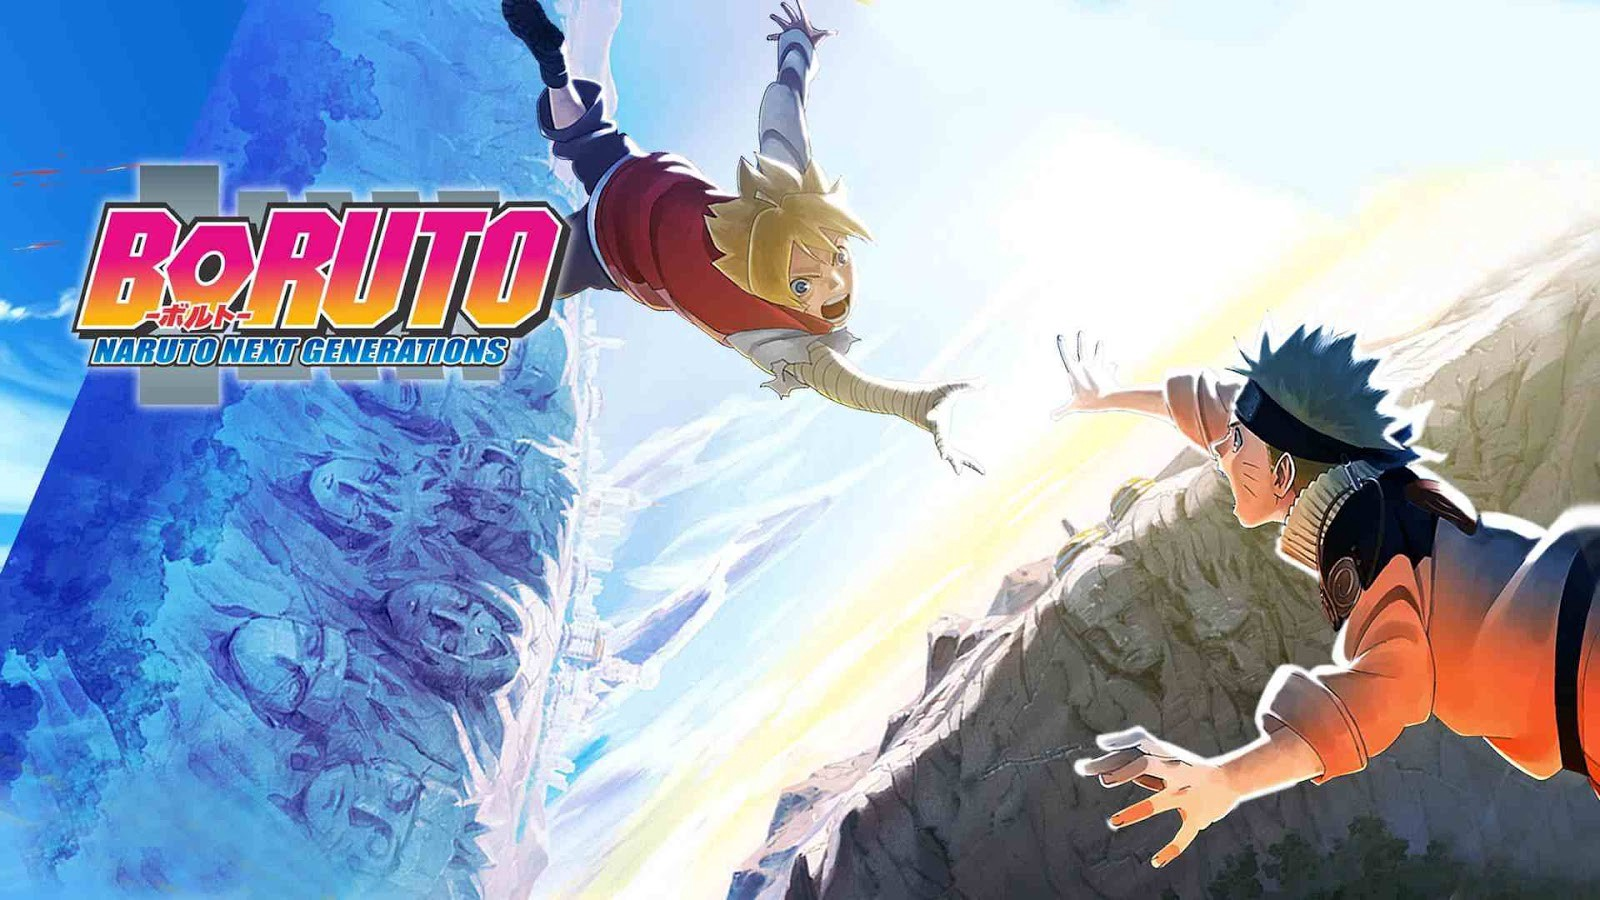 Boruto: Naruto Next Generations Re-Runs with a Special Project